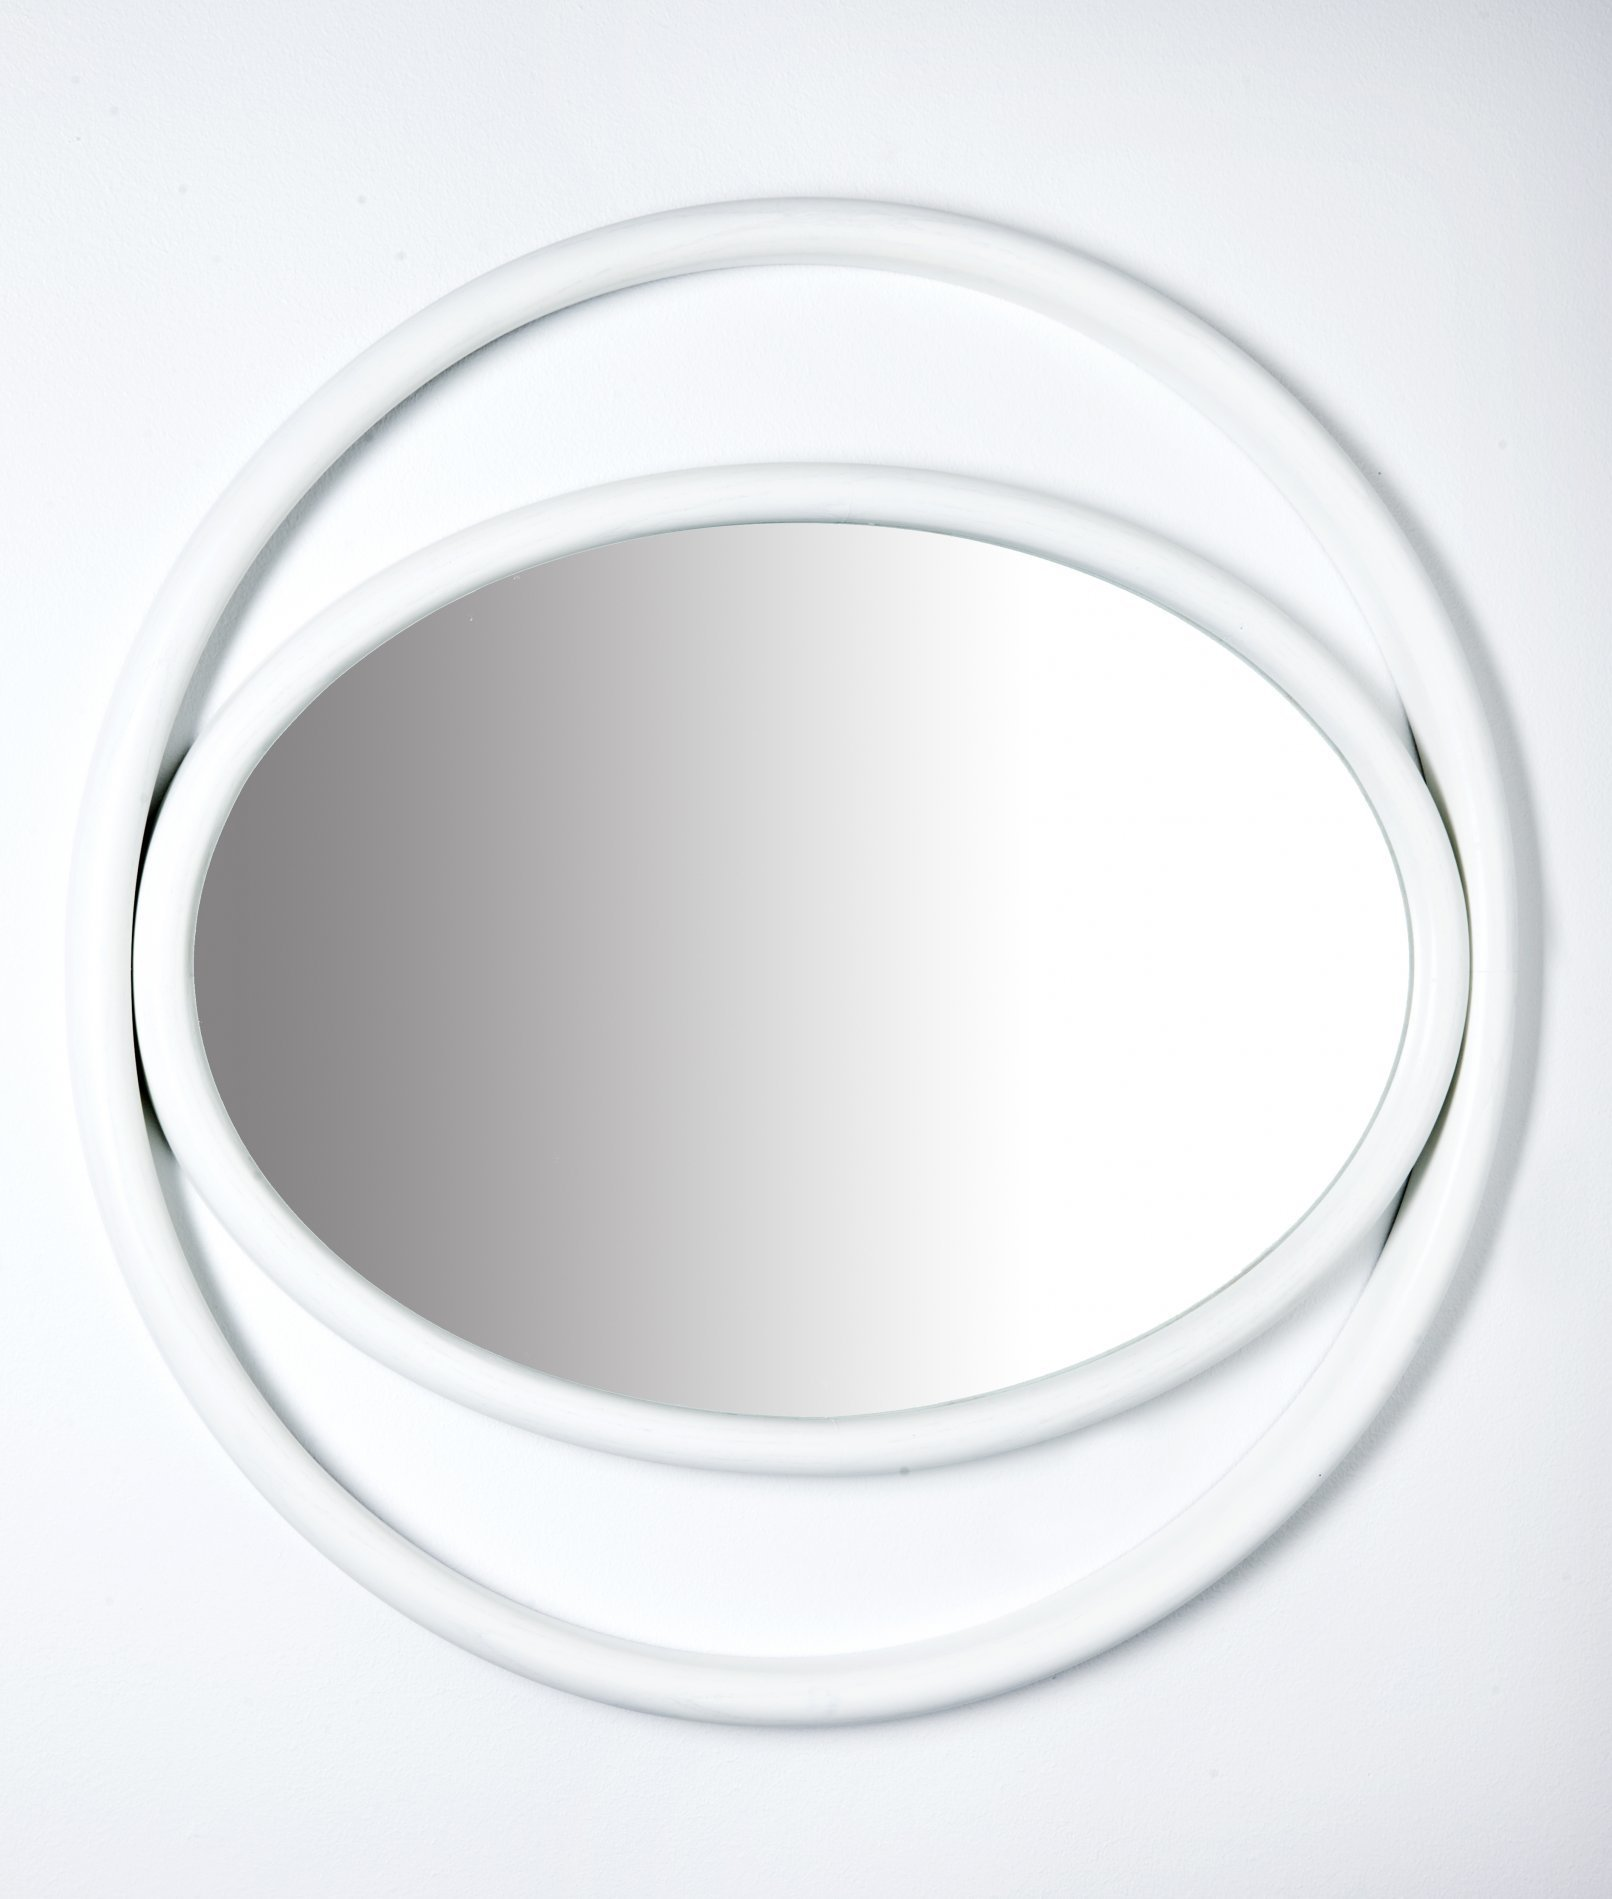 Eyeshine Mirror - Simple geometric shapes, a combination of circles and ovals, recreate scenic suggestions that bring to mind the mystical powers of the eye and delineate the outline of the Eyeshine mirrors devised by the designer Anki Gneib. The steam-bent ash encloses the reflecting surface and shows different sizes, expanding the eye's searching echo.  | Matter of Stuff